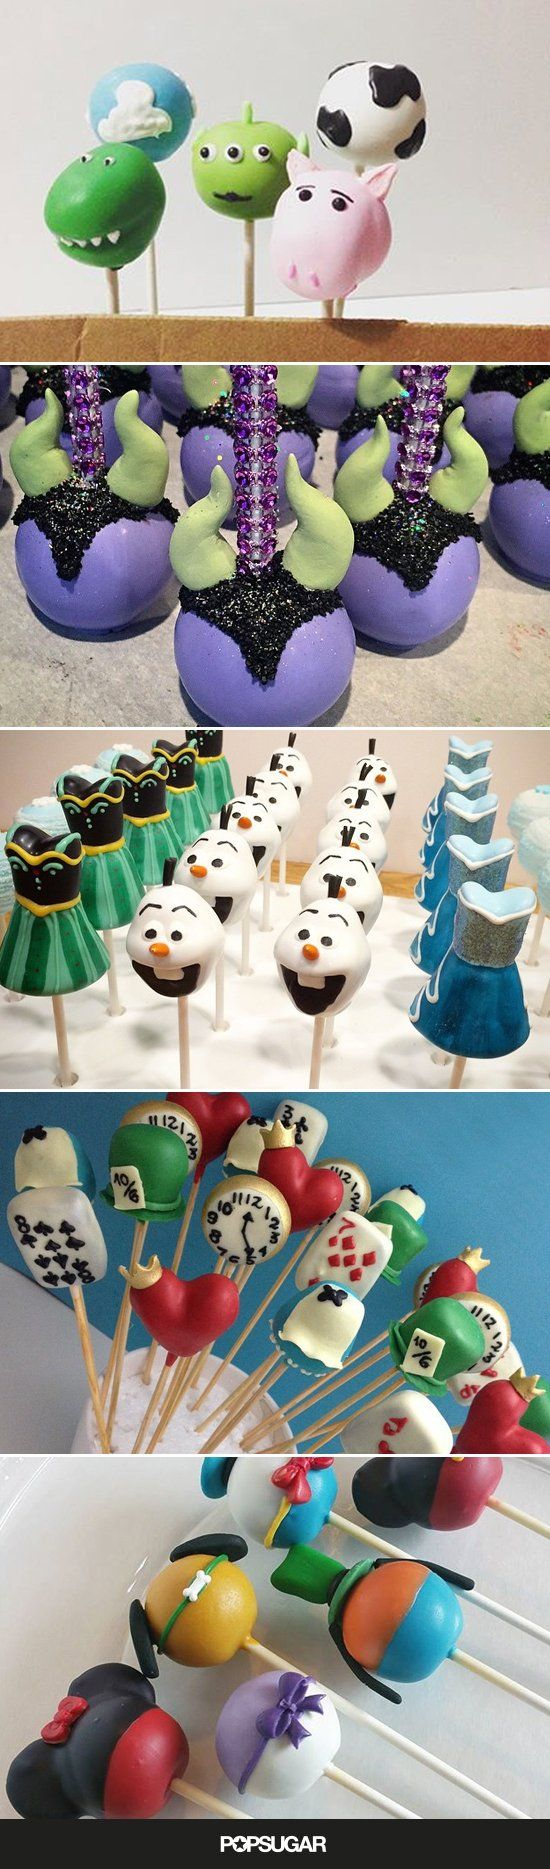 1000+ ideas about Cake Pop Designs on Pinterest Cakepops ...